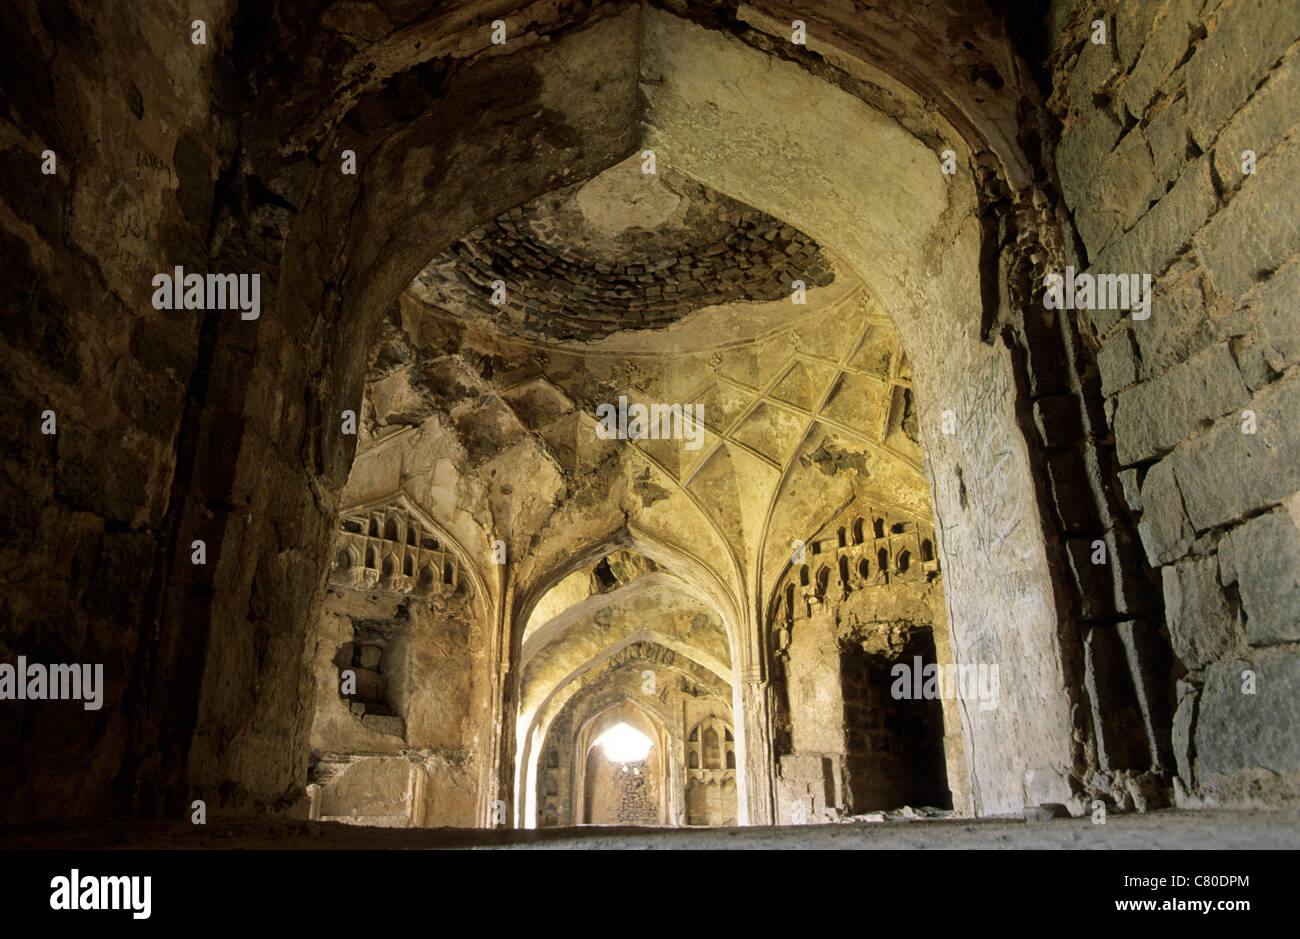 India, Hyderabad, Ap, Golconda Fort - Stock Image